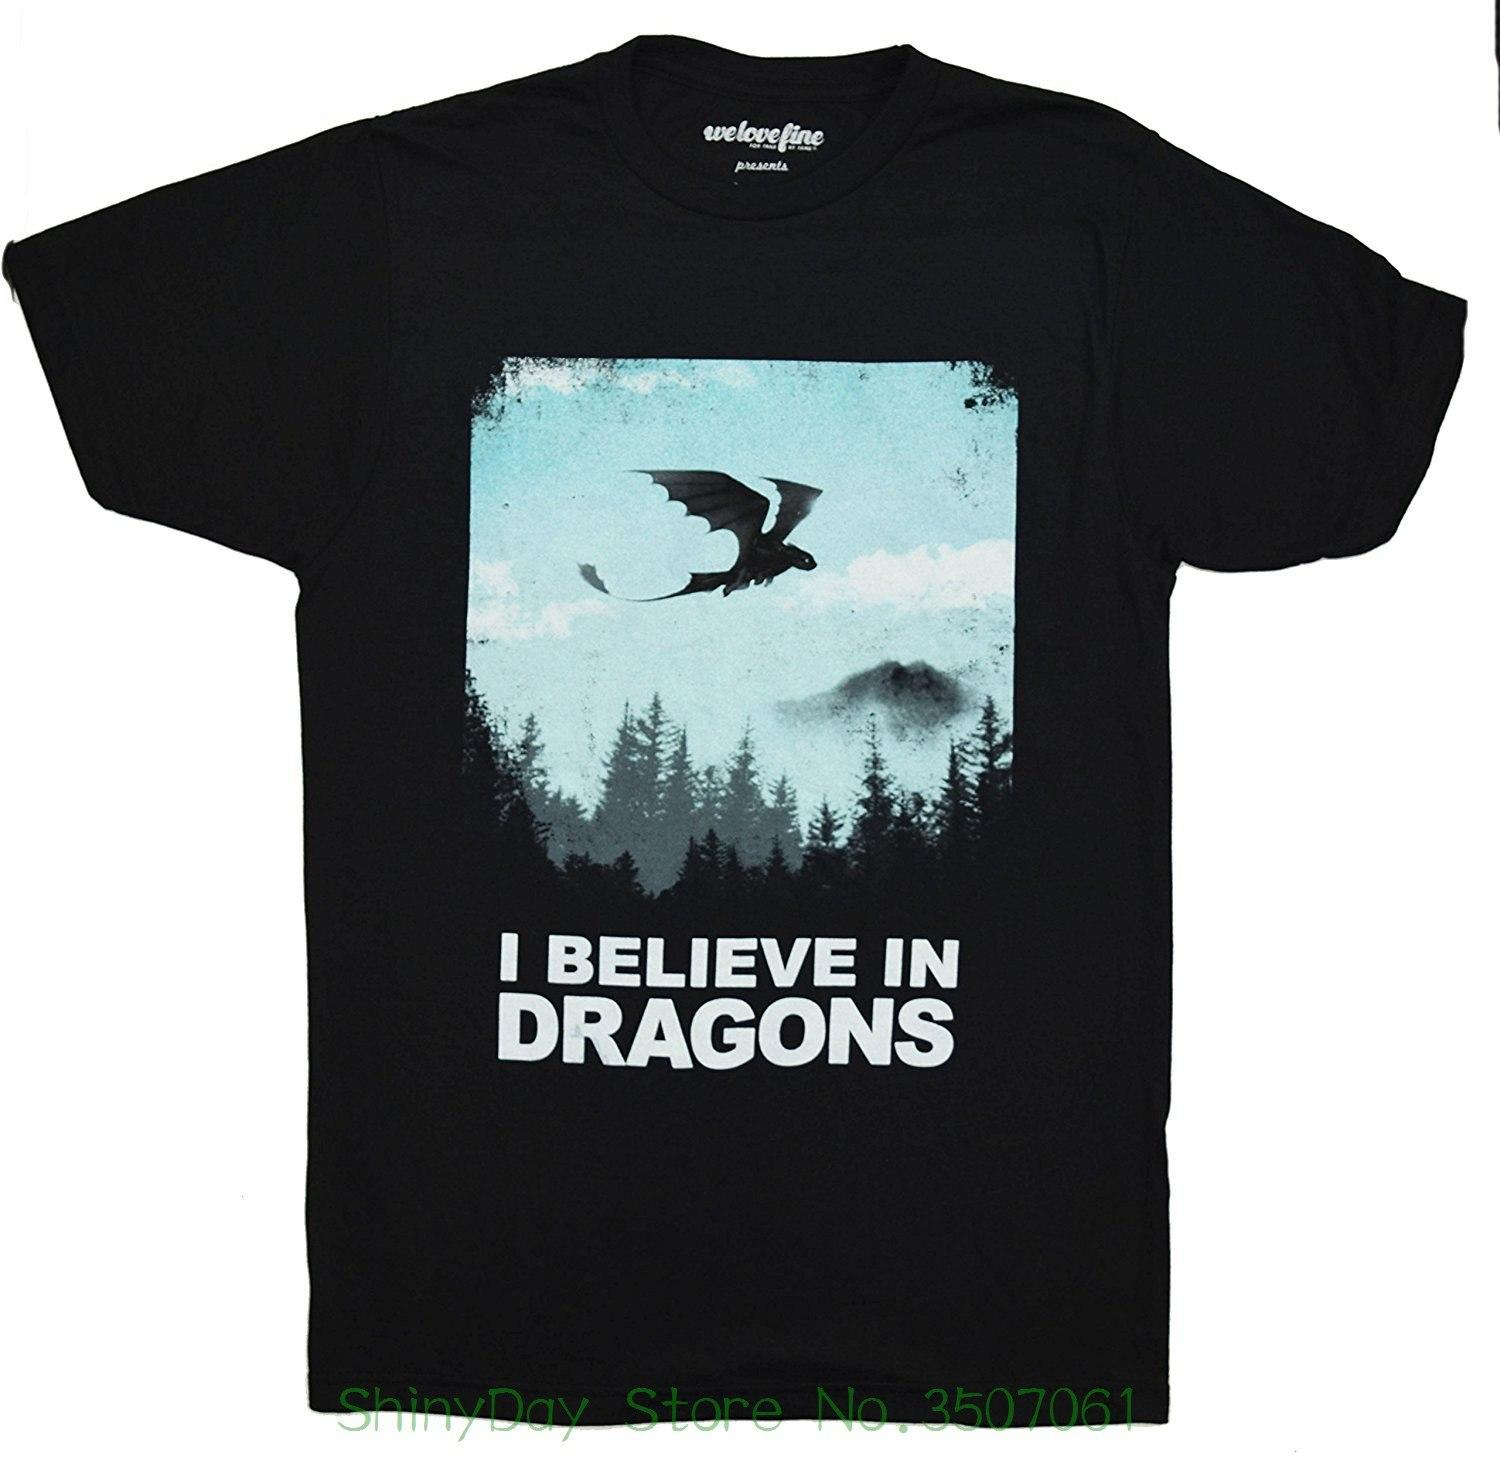 00127376 QCCL Tee Shirt Mens 2018 New Tee Shirts Printing Dreamworks How To Train  Your Dragon Want